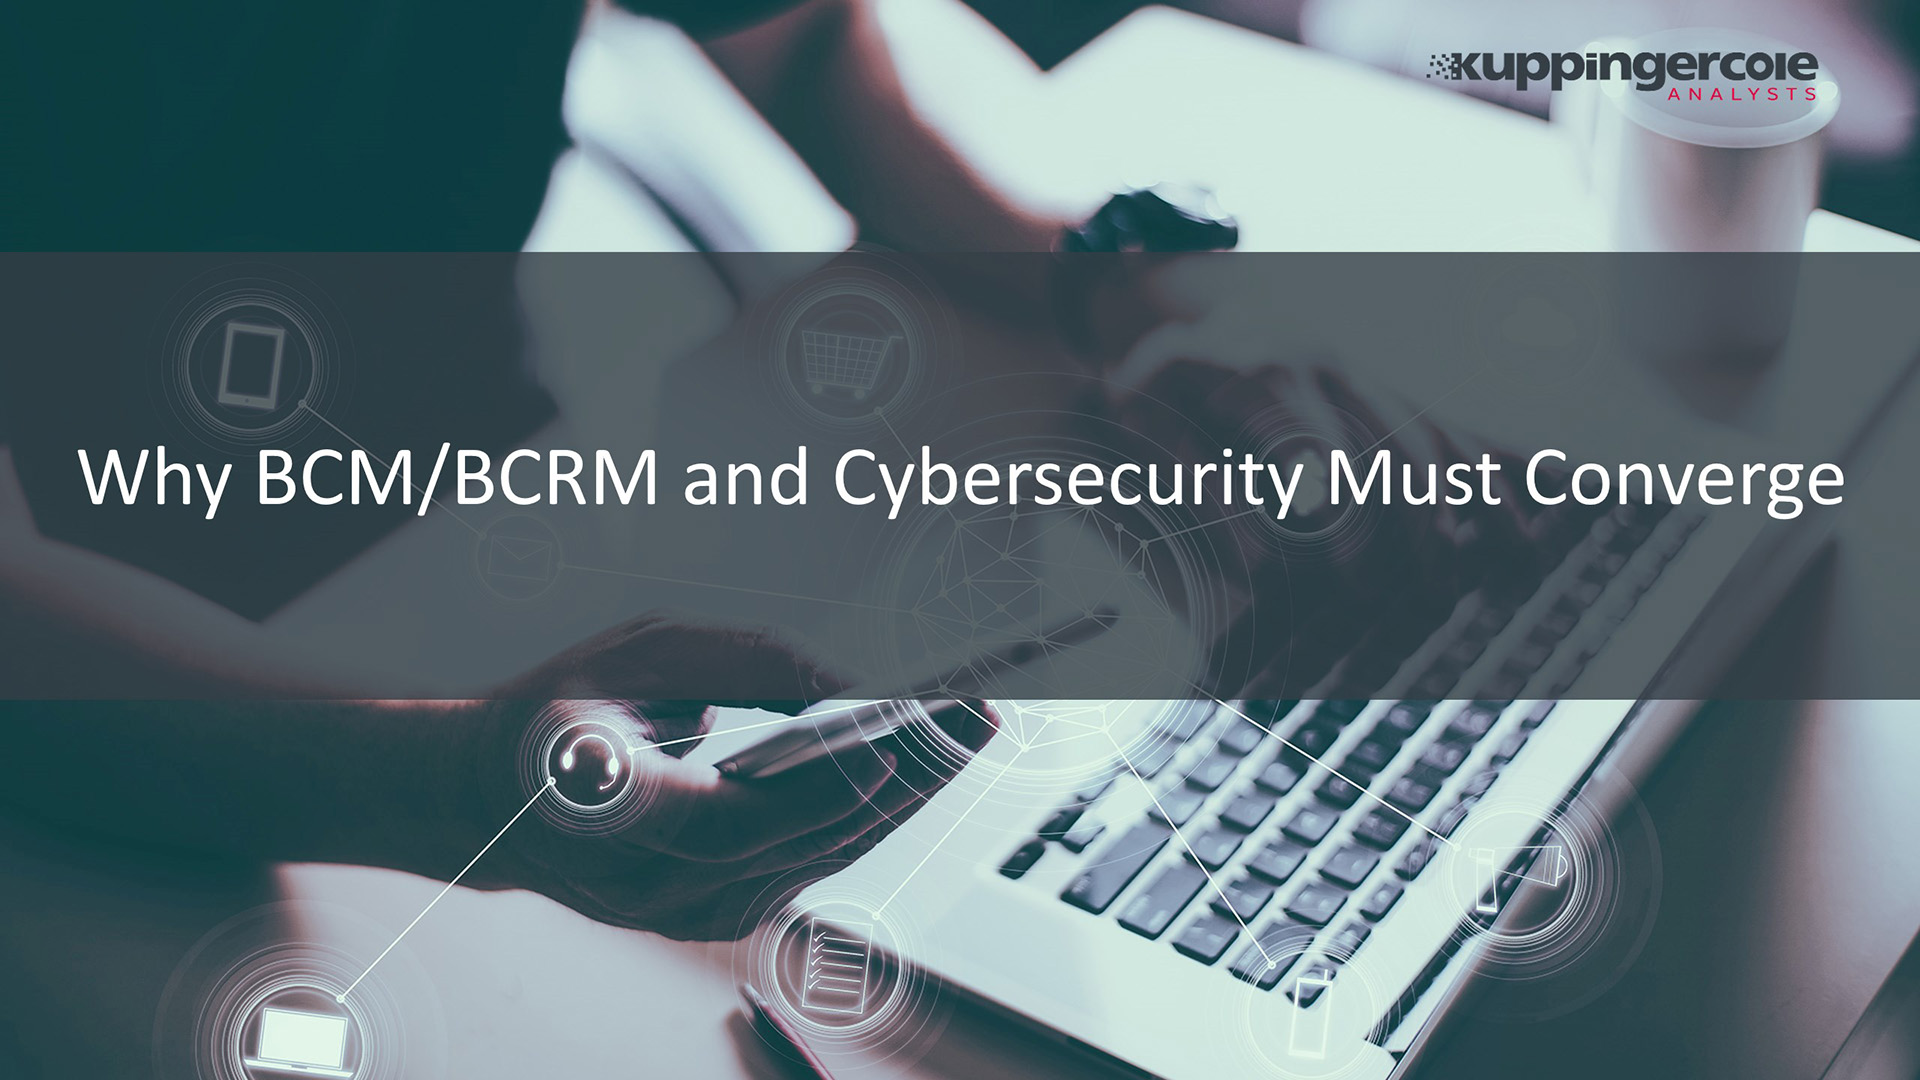 Why BCM/BCRM and Cybersecurity Must Converge